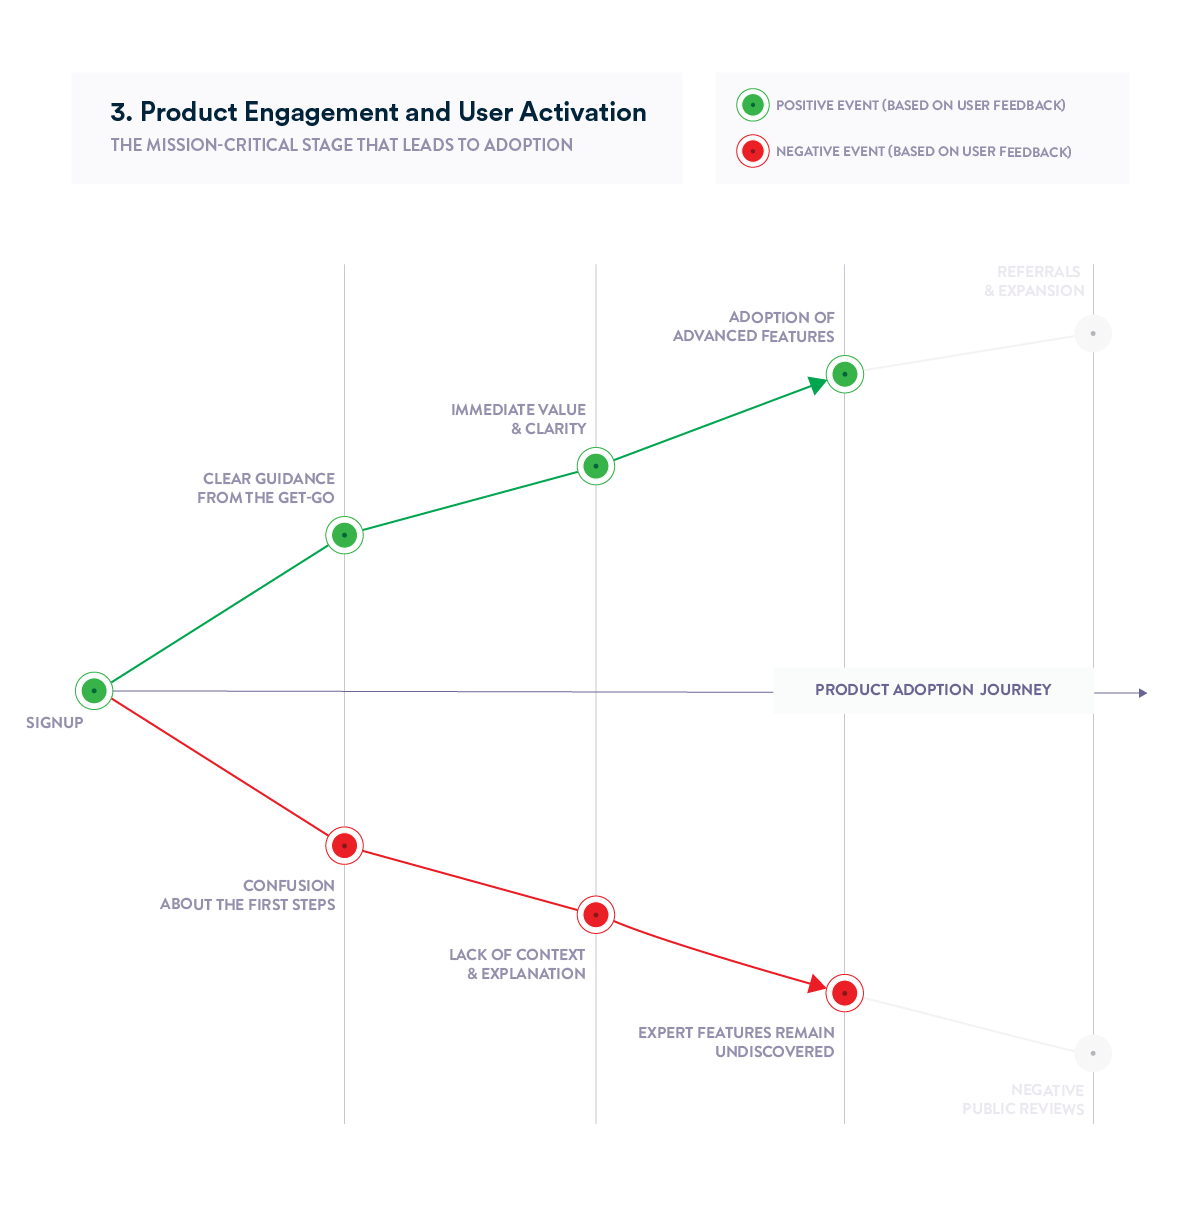 Product Adoption Journey chart - Product engagement and user activation